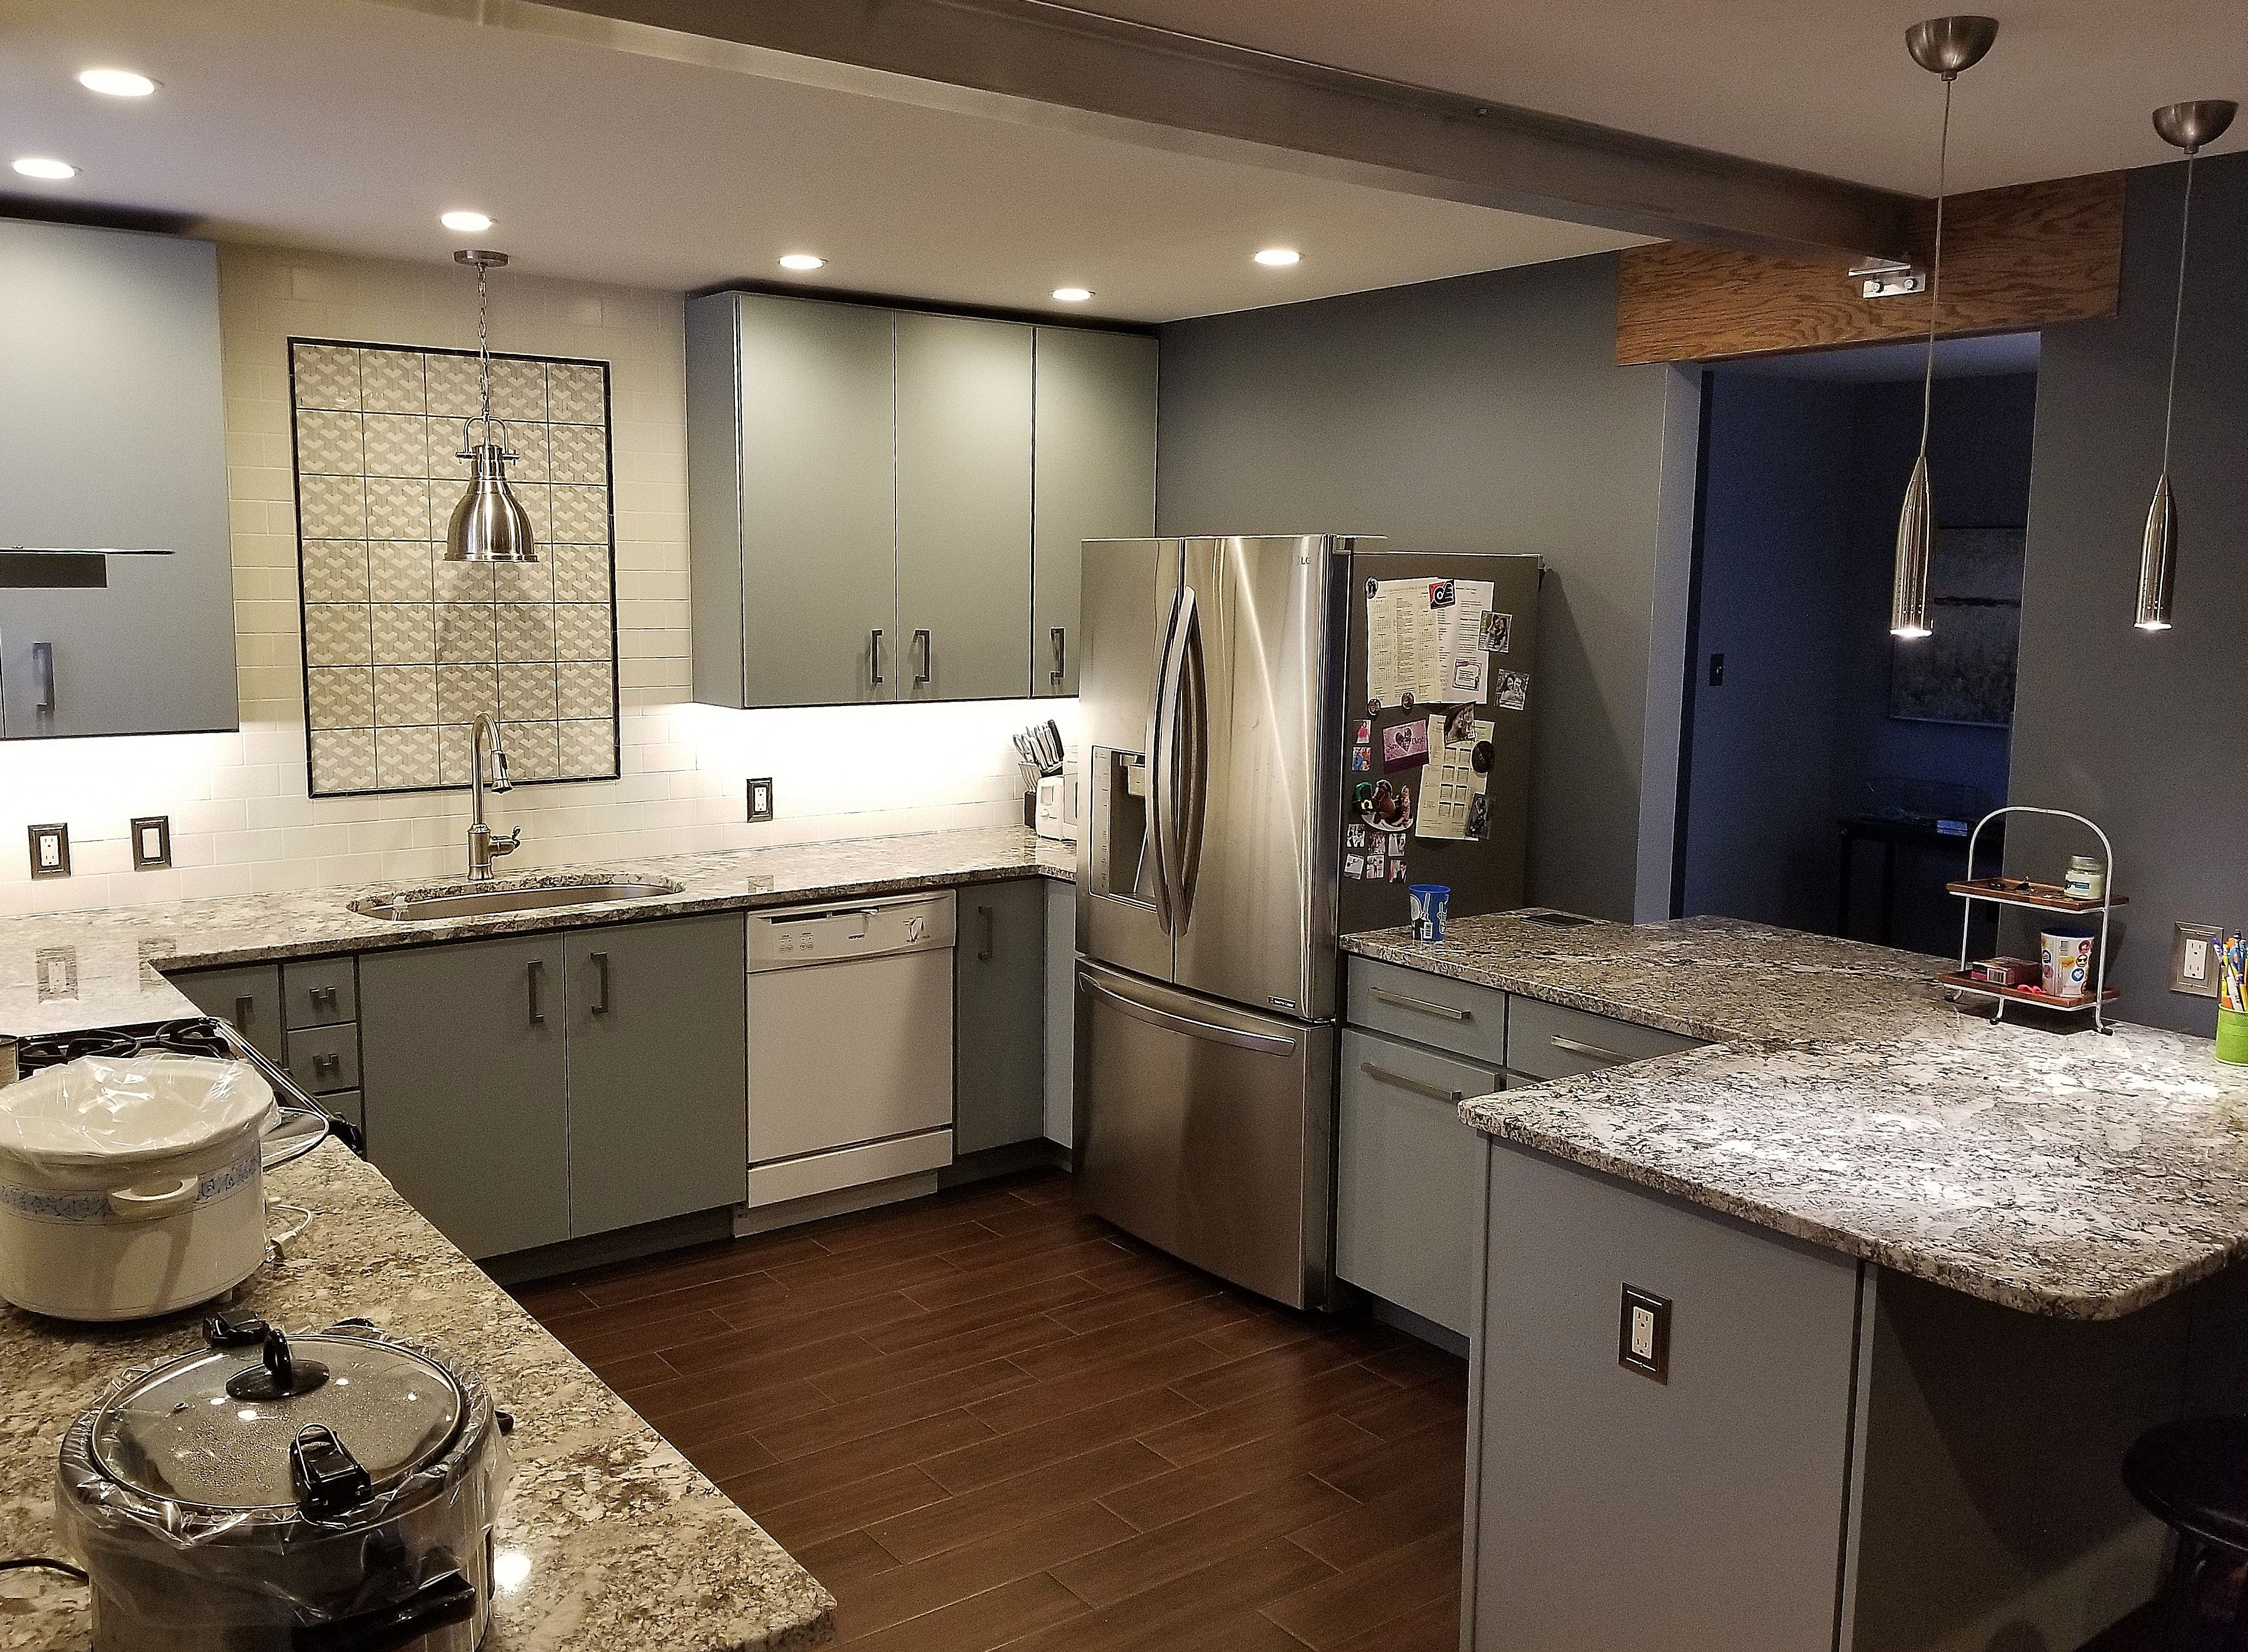 Contemporary kitchen with light blue cabinetry ganashe granite